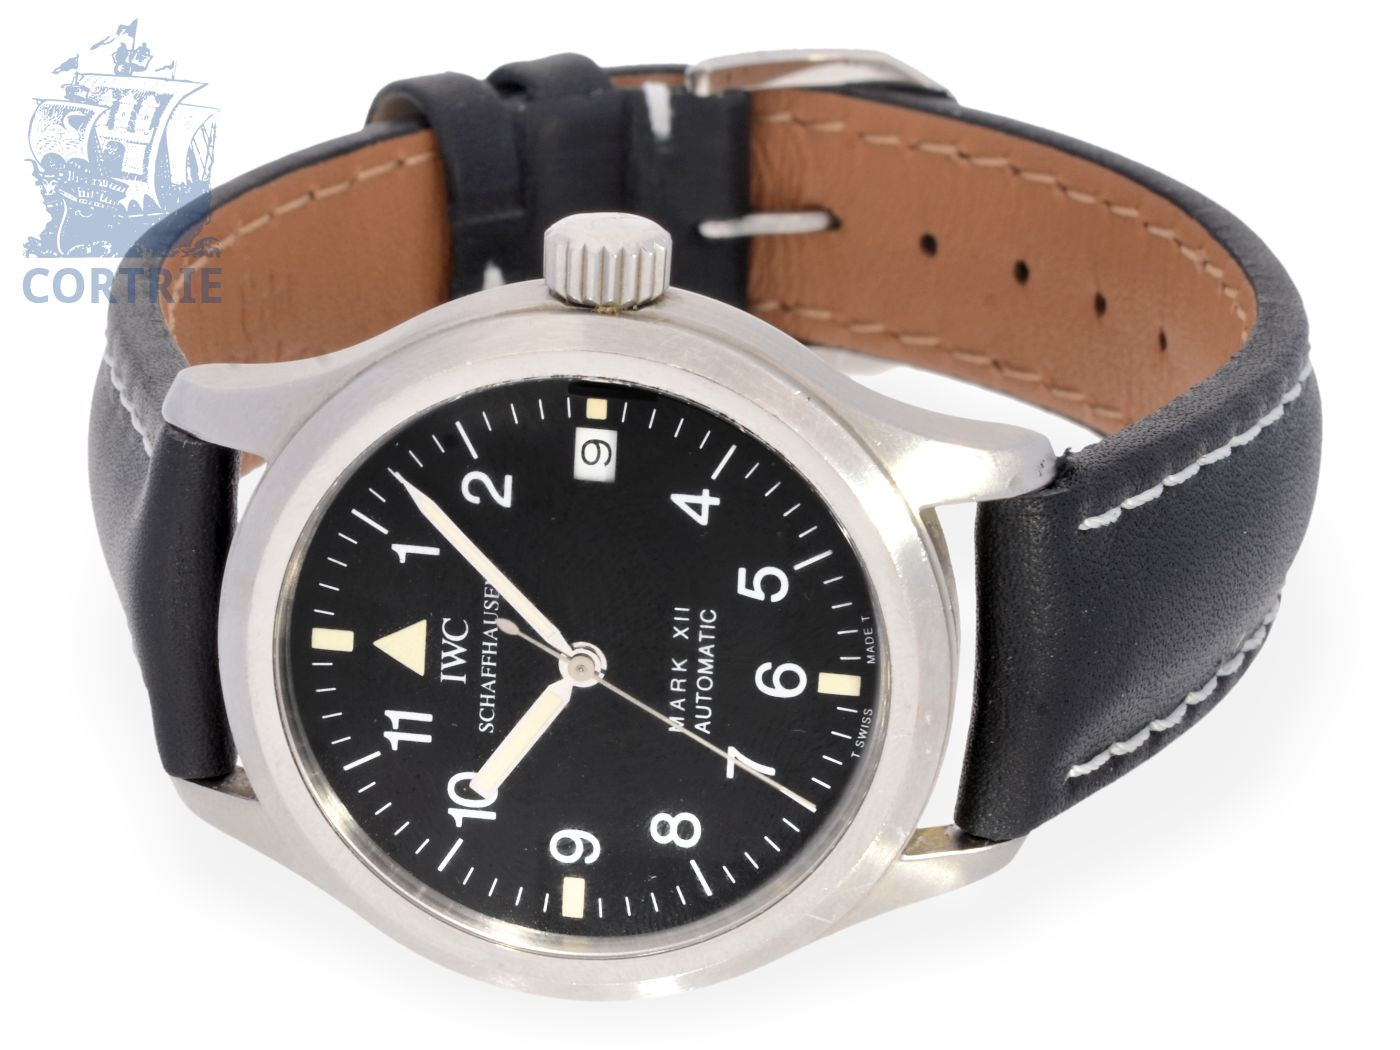 Wristwatch: automatic pilot's watch, IWC Mark XII reference 3241-